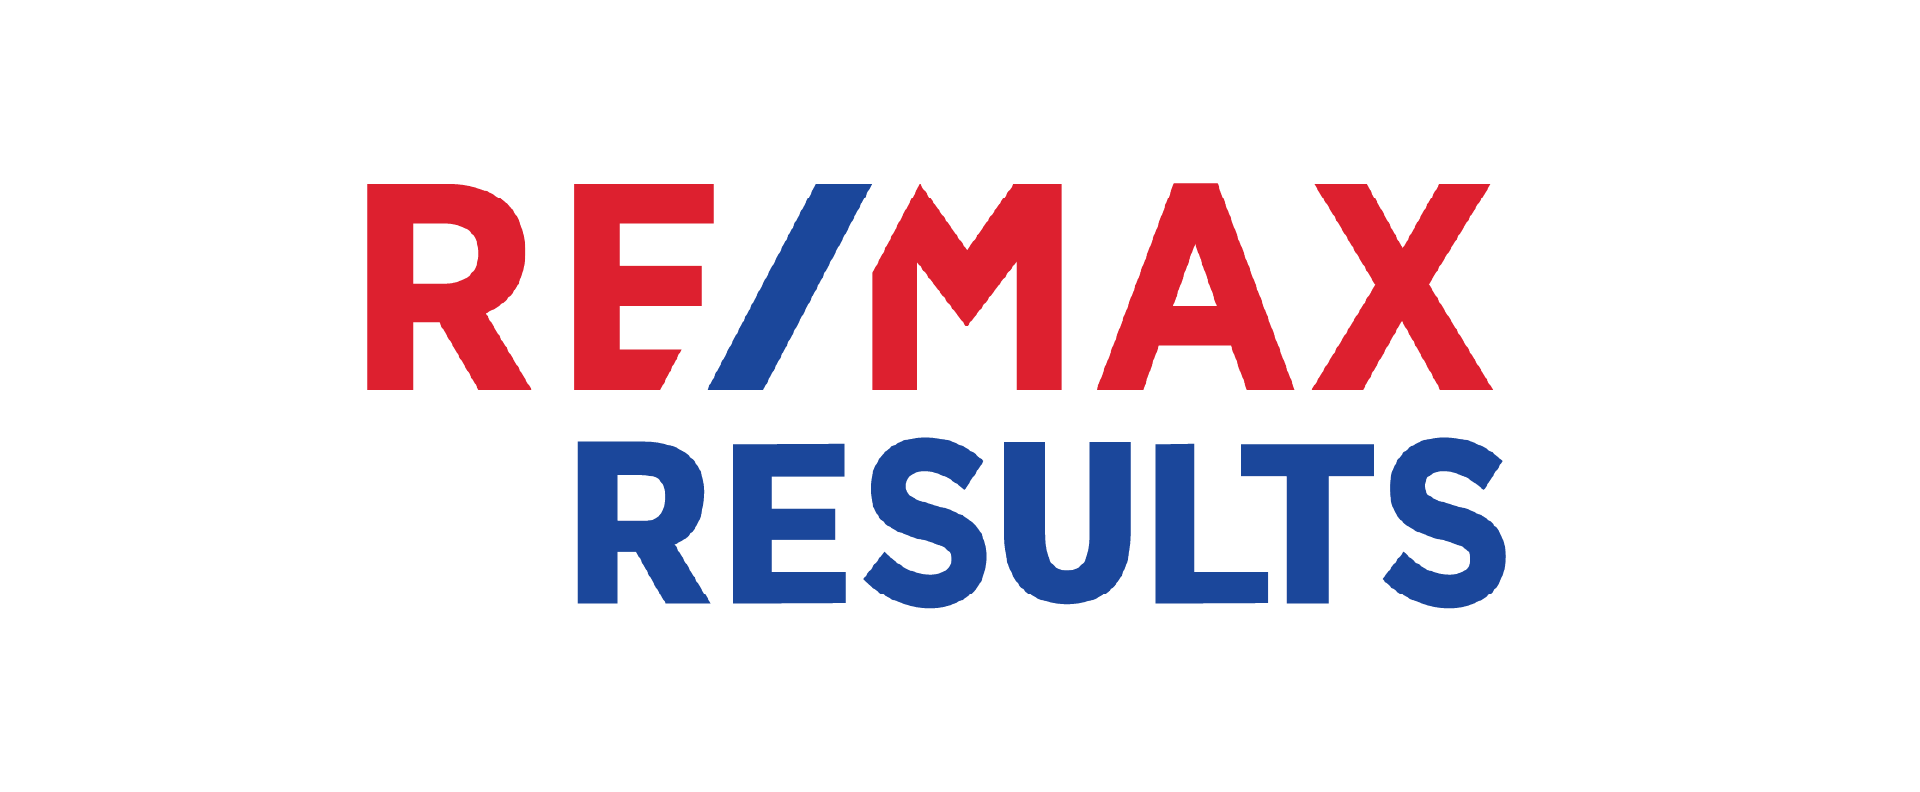 white remax results logo